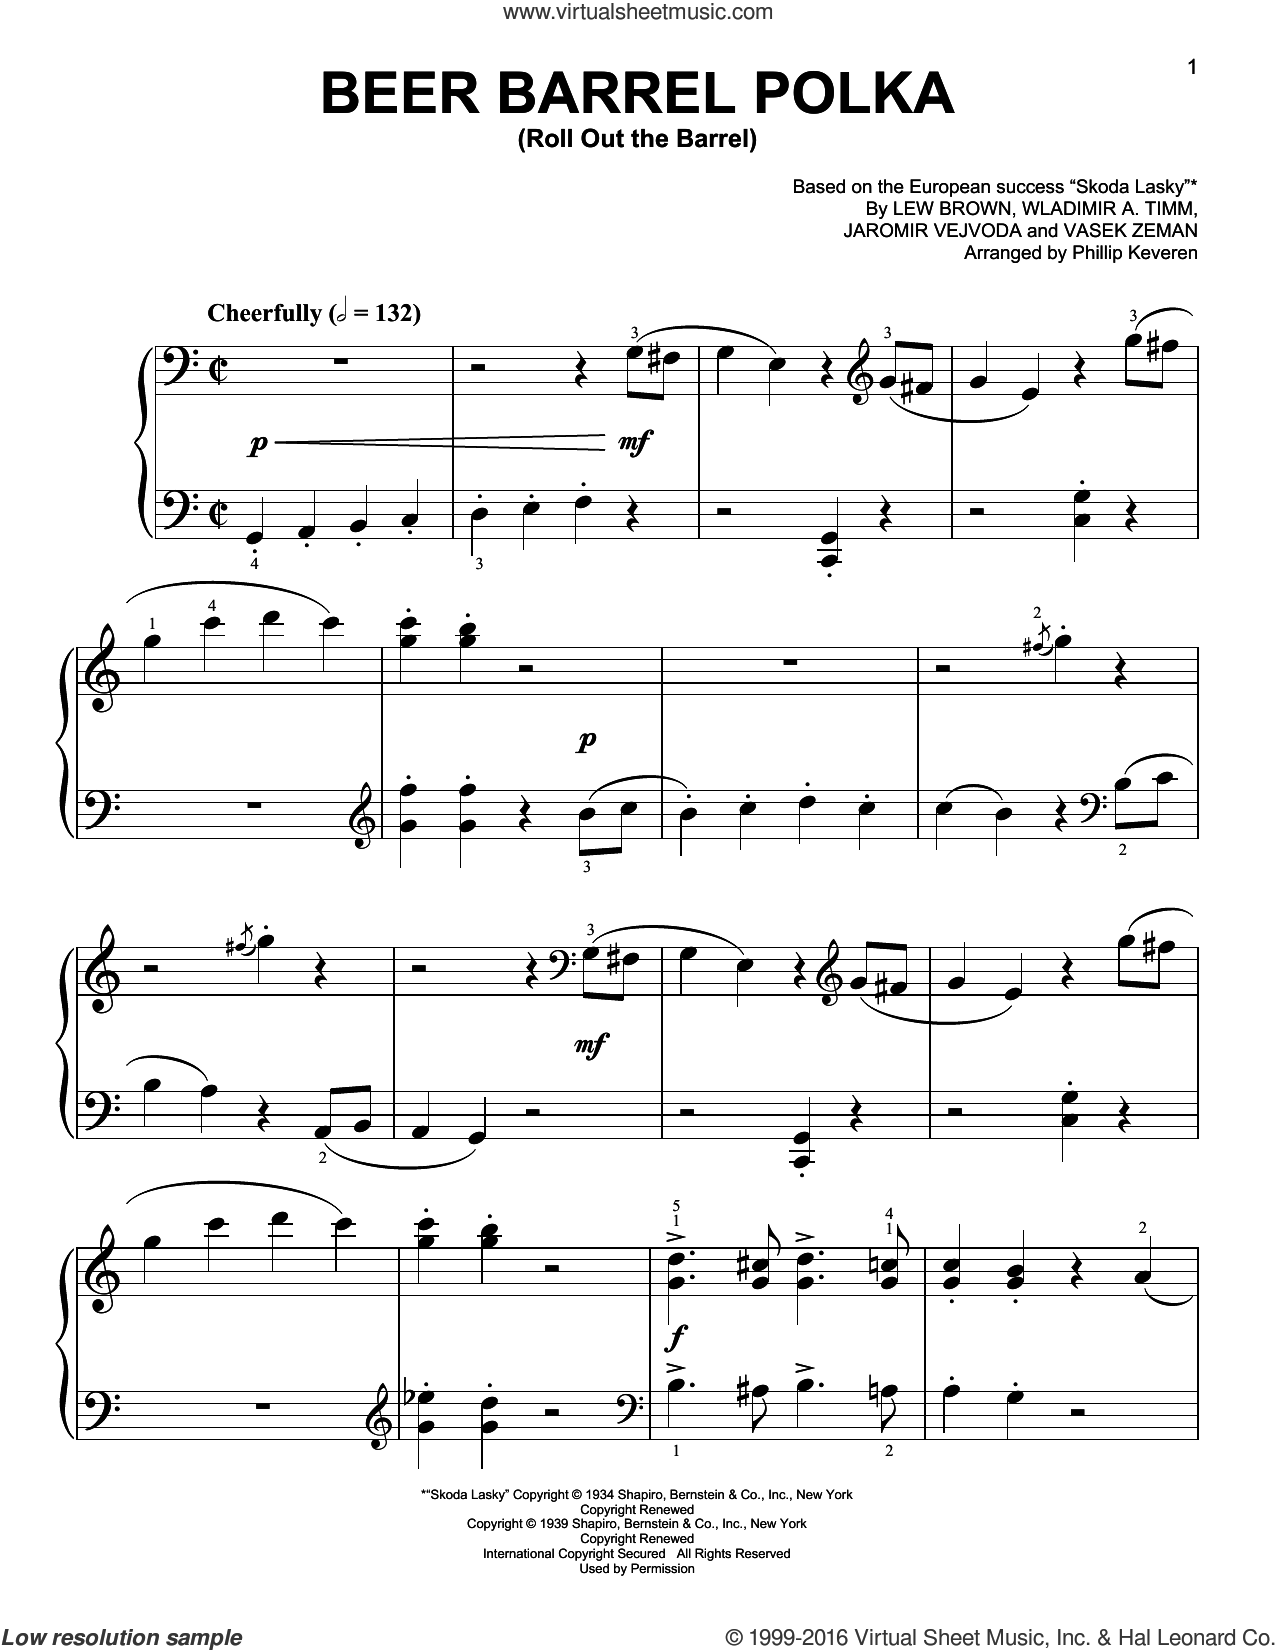 Beer Barrel Polka (Roll Out The Barrel) sheet music for piano solo by Lew Brown, Phillip Keveren, Bobby Vinton, Miscellaneous, Jaromir Vejvoda, Vasek Zeman and Wladimir A. Timm, easy skill level